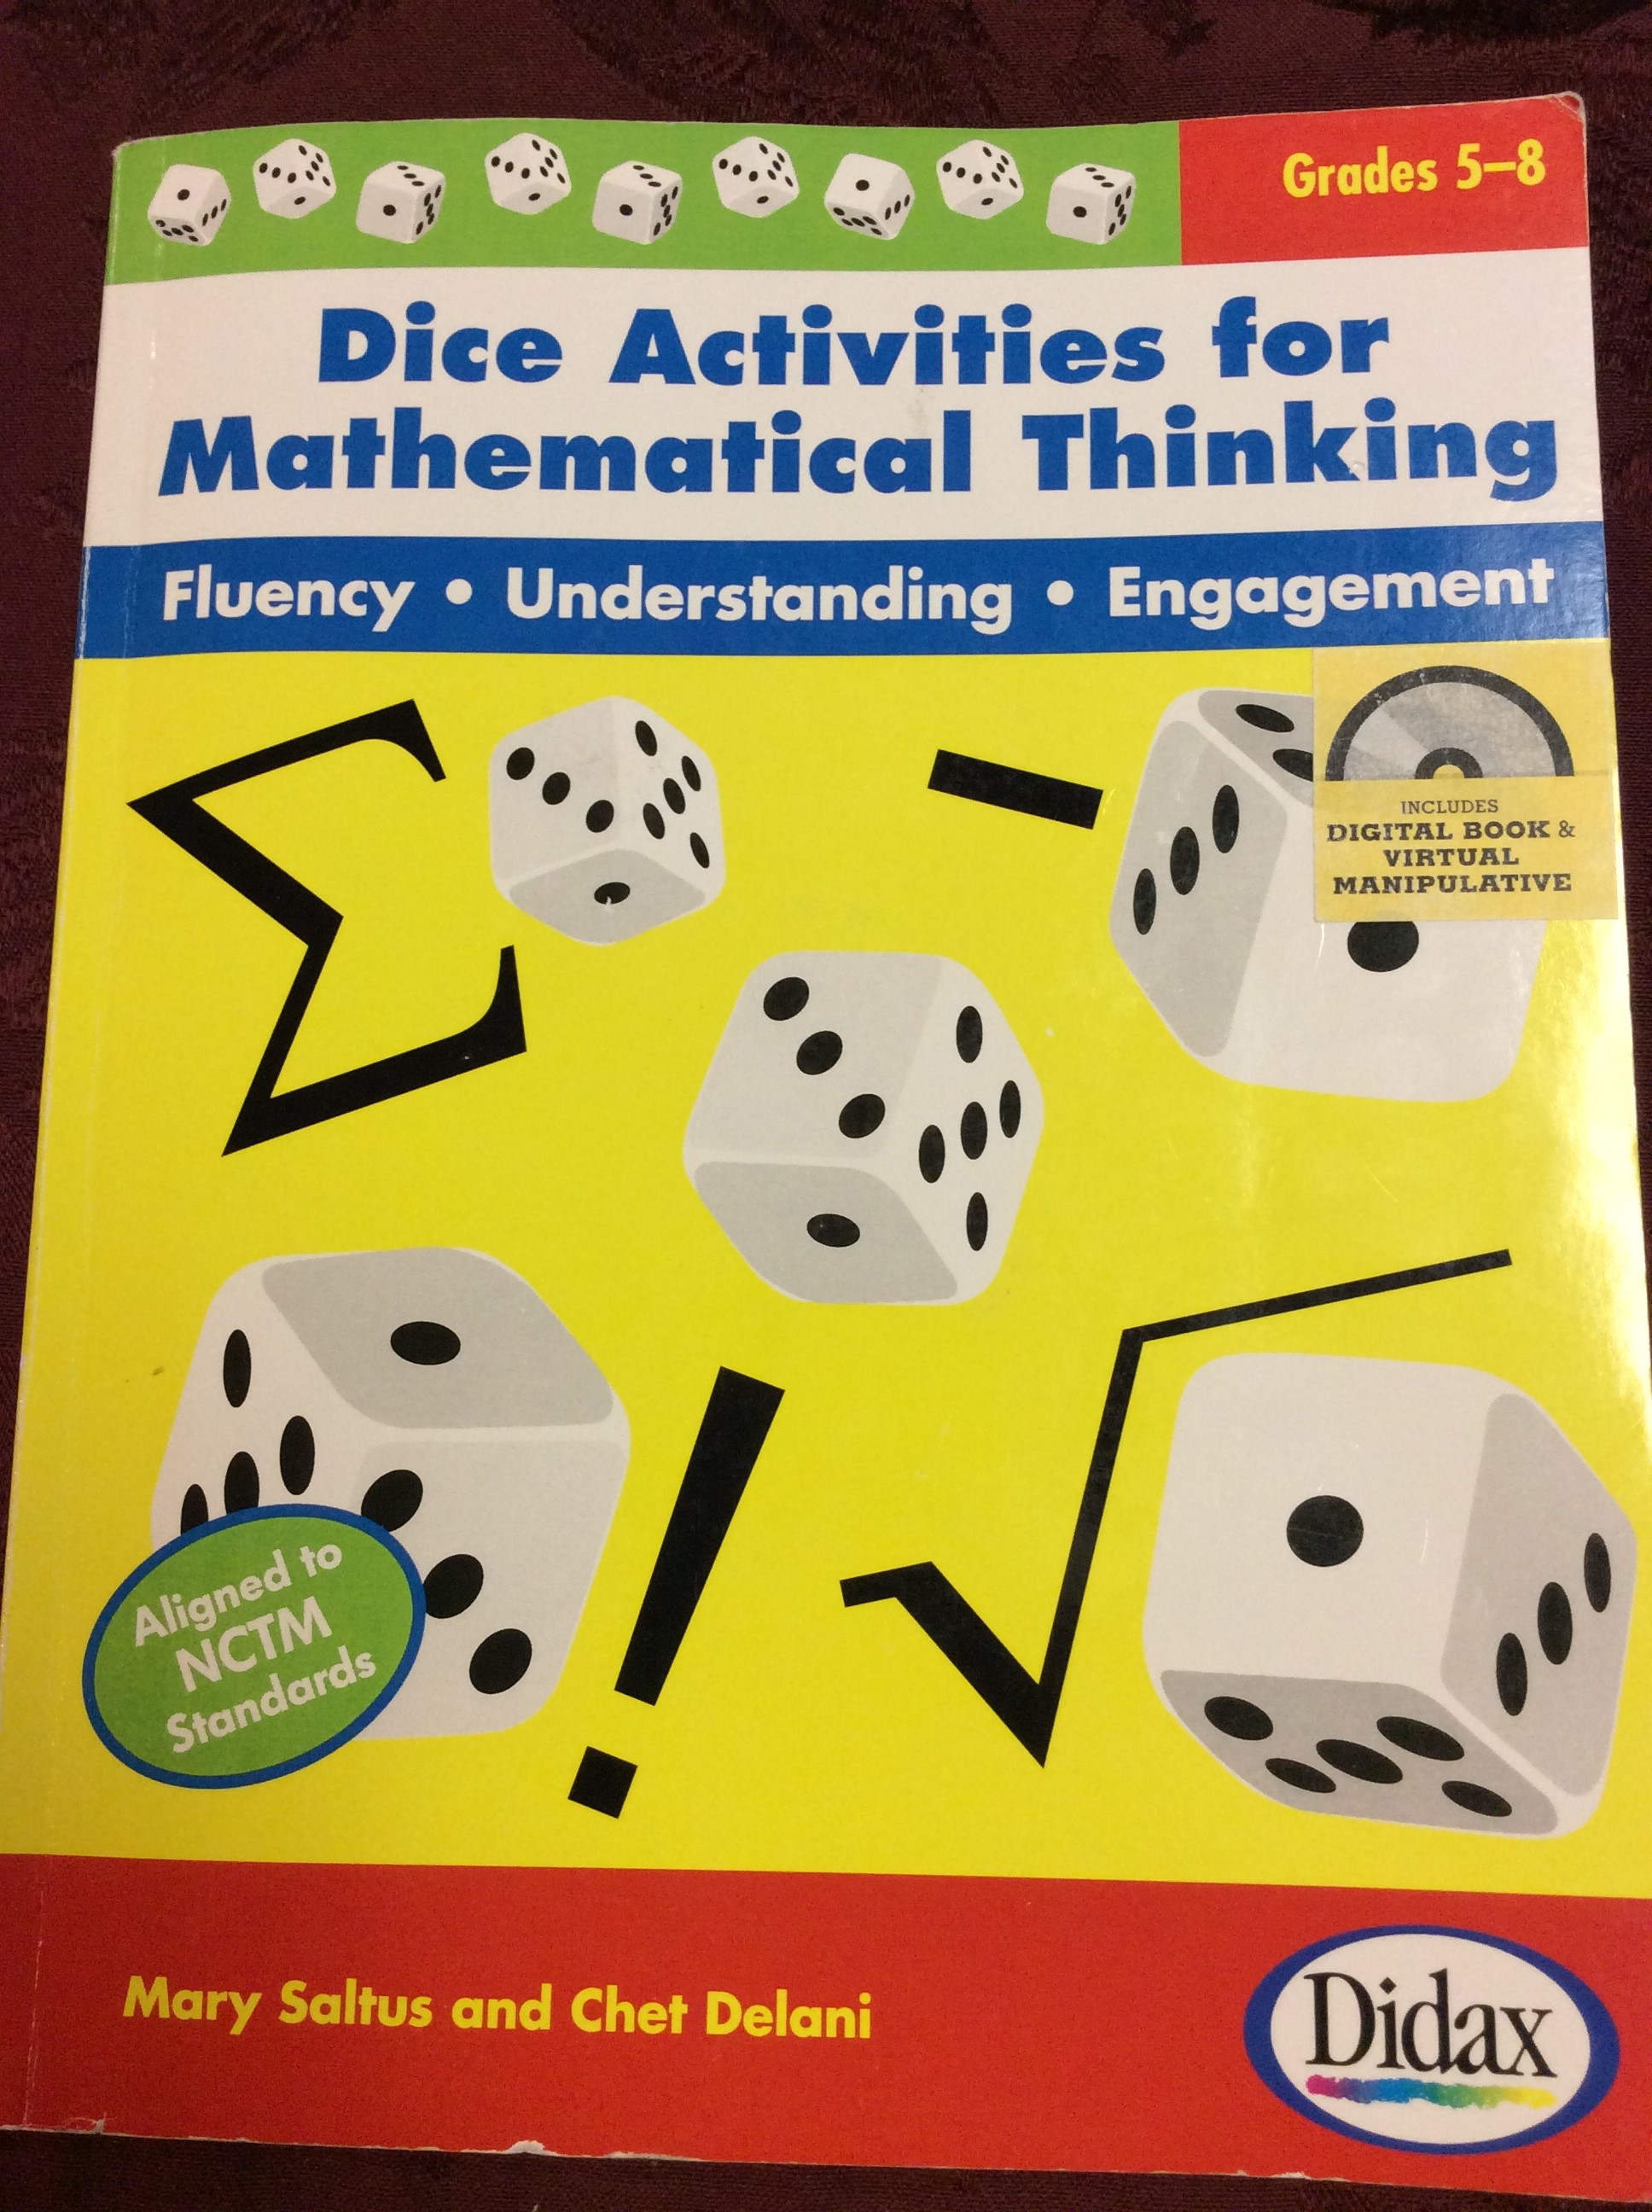 critical thinking activities for mathematics